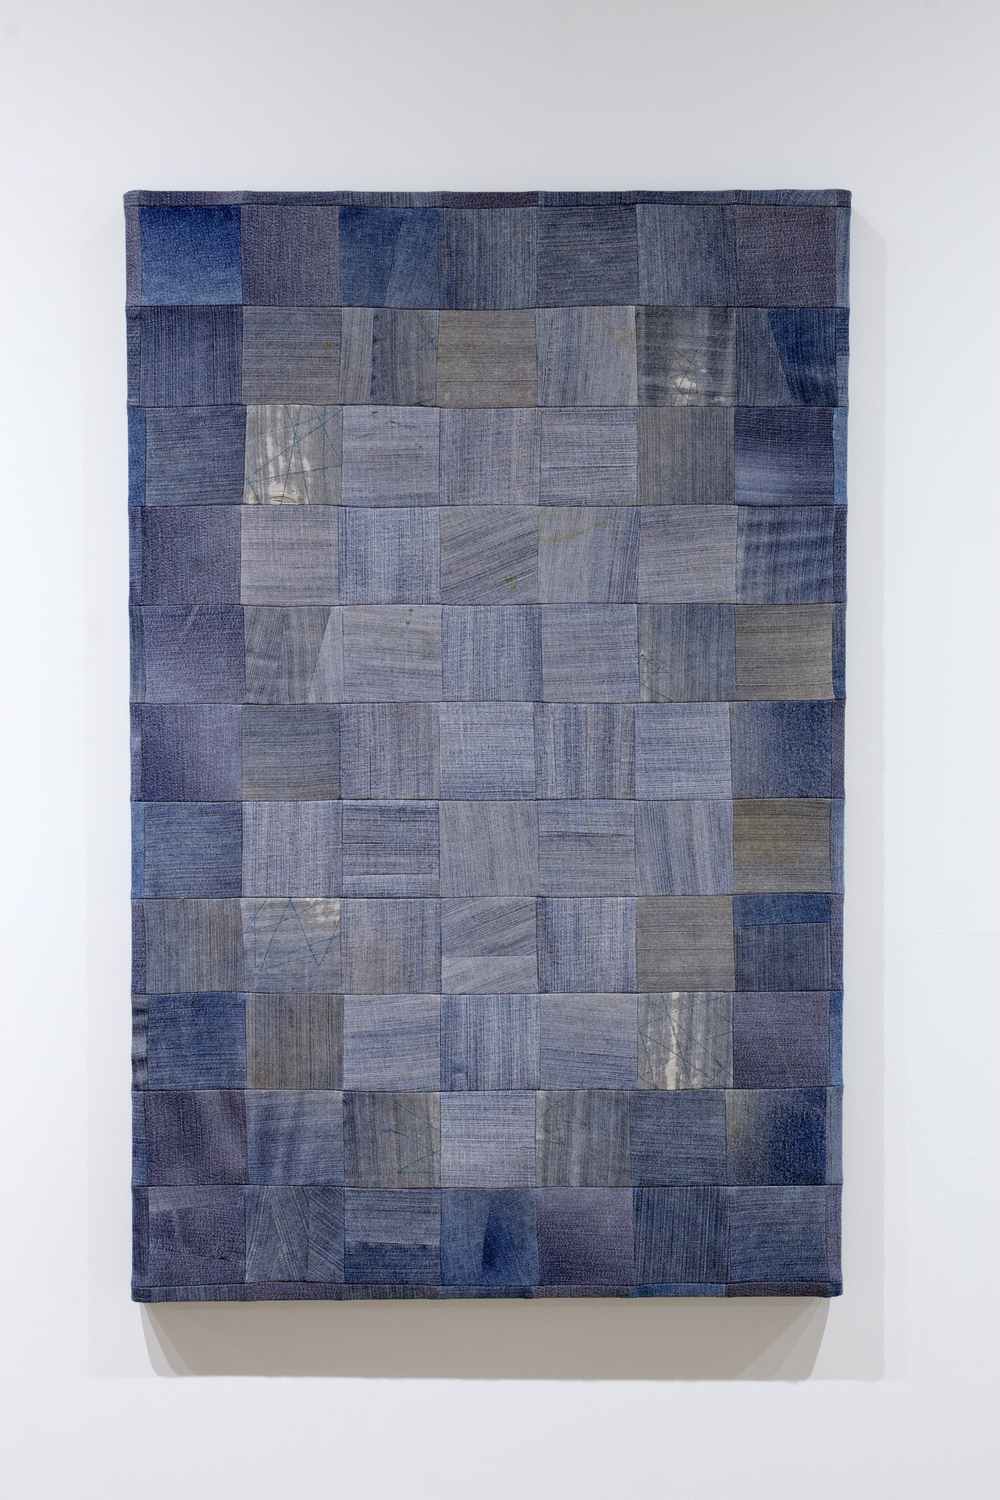 Jeans (Light) , 2015, mixed fabrics, 88 x 75 cm (34.5 x 29.5 in)